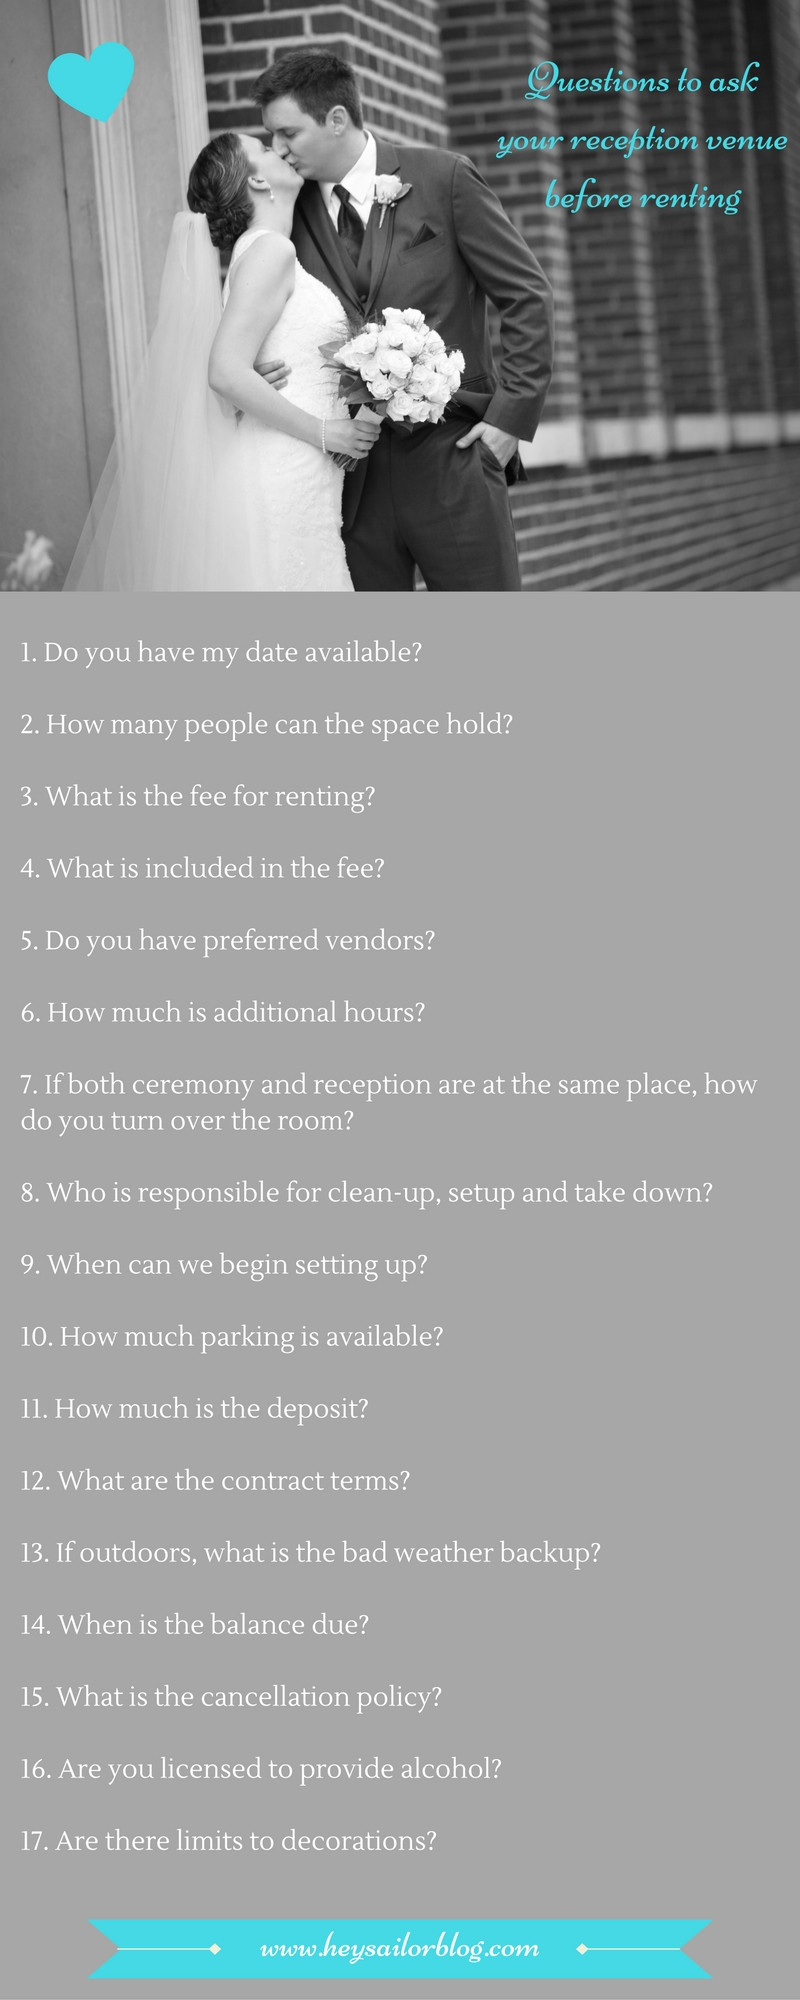 questions to ask reception venue before renting